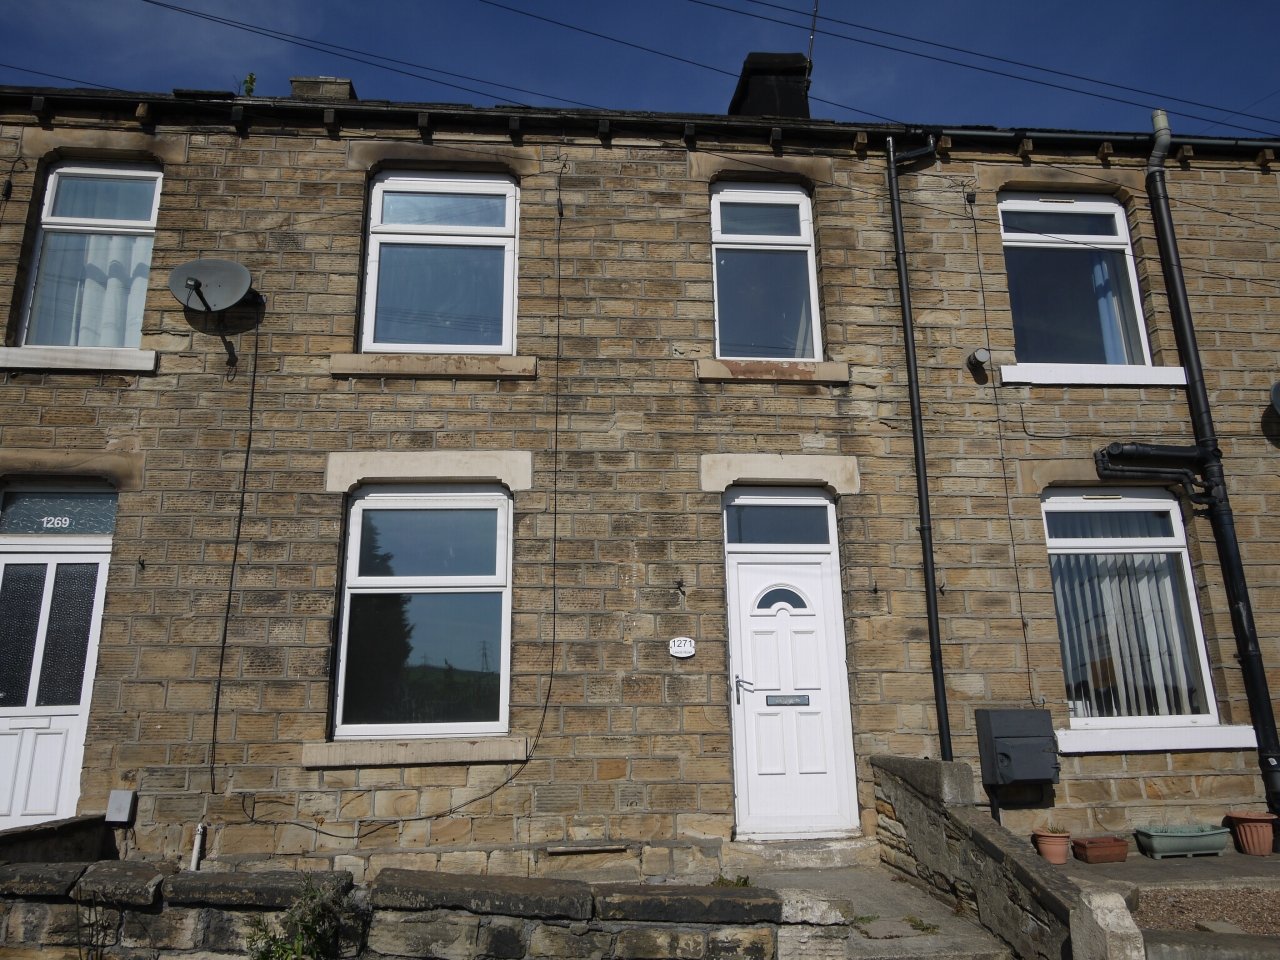 2 bedroom mid terraced house For Sale in Huddersfield - Photograph 1.